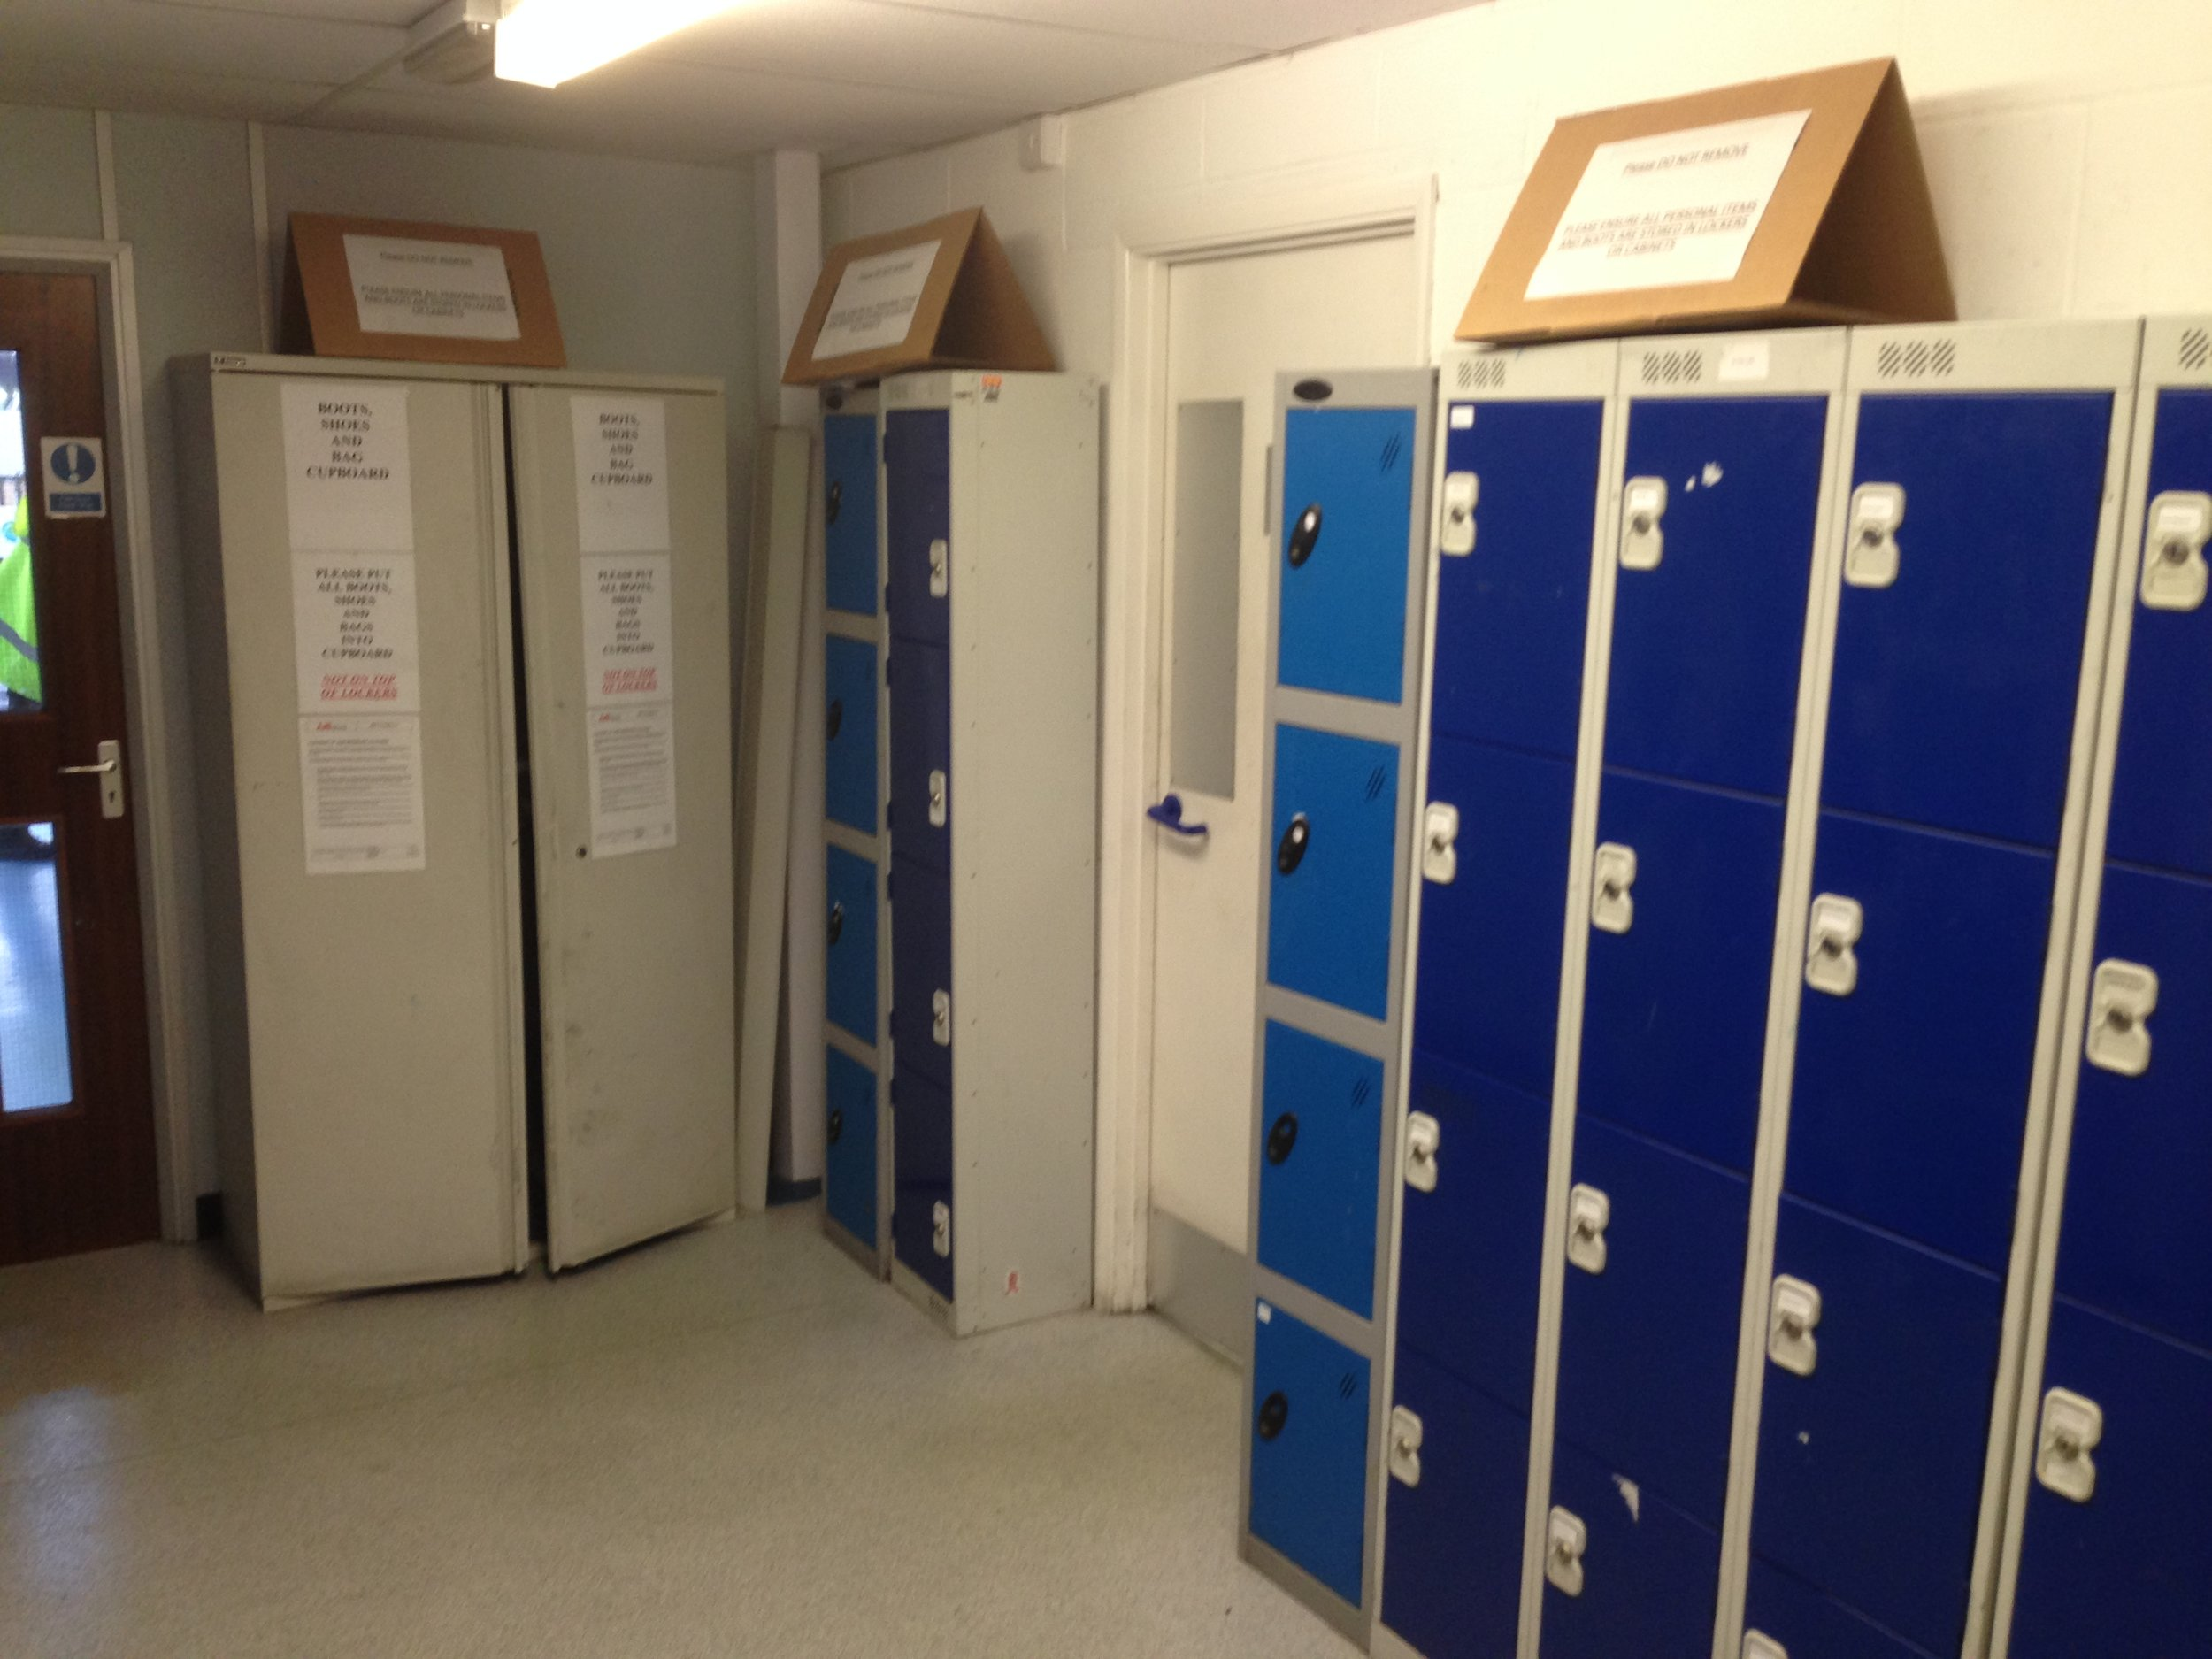 Office remodelling - design and refit - Littlehampton manufacturing sector-14